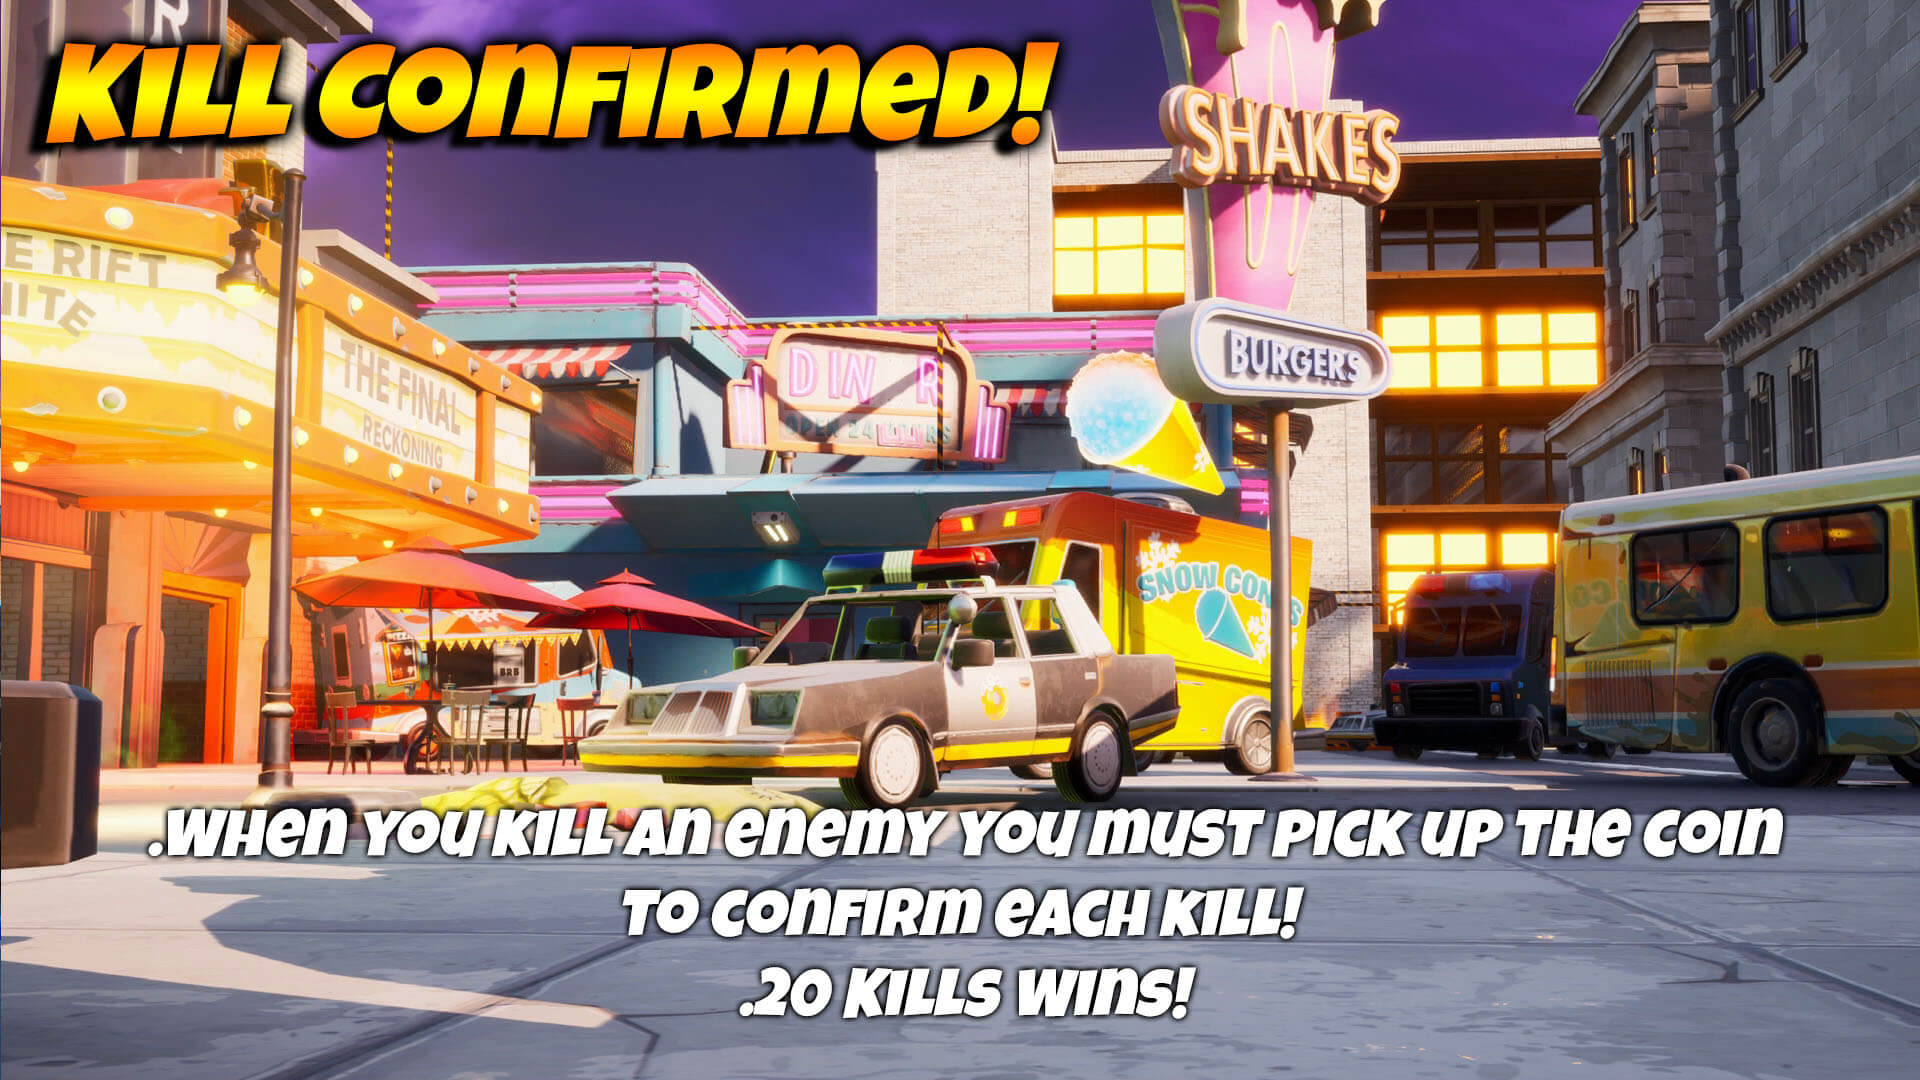 KILL CONFIRMED! - CYNICAL CITY!